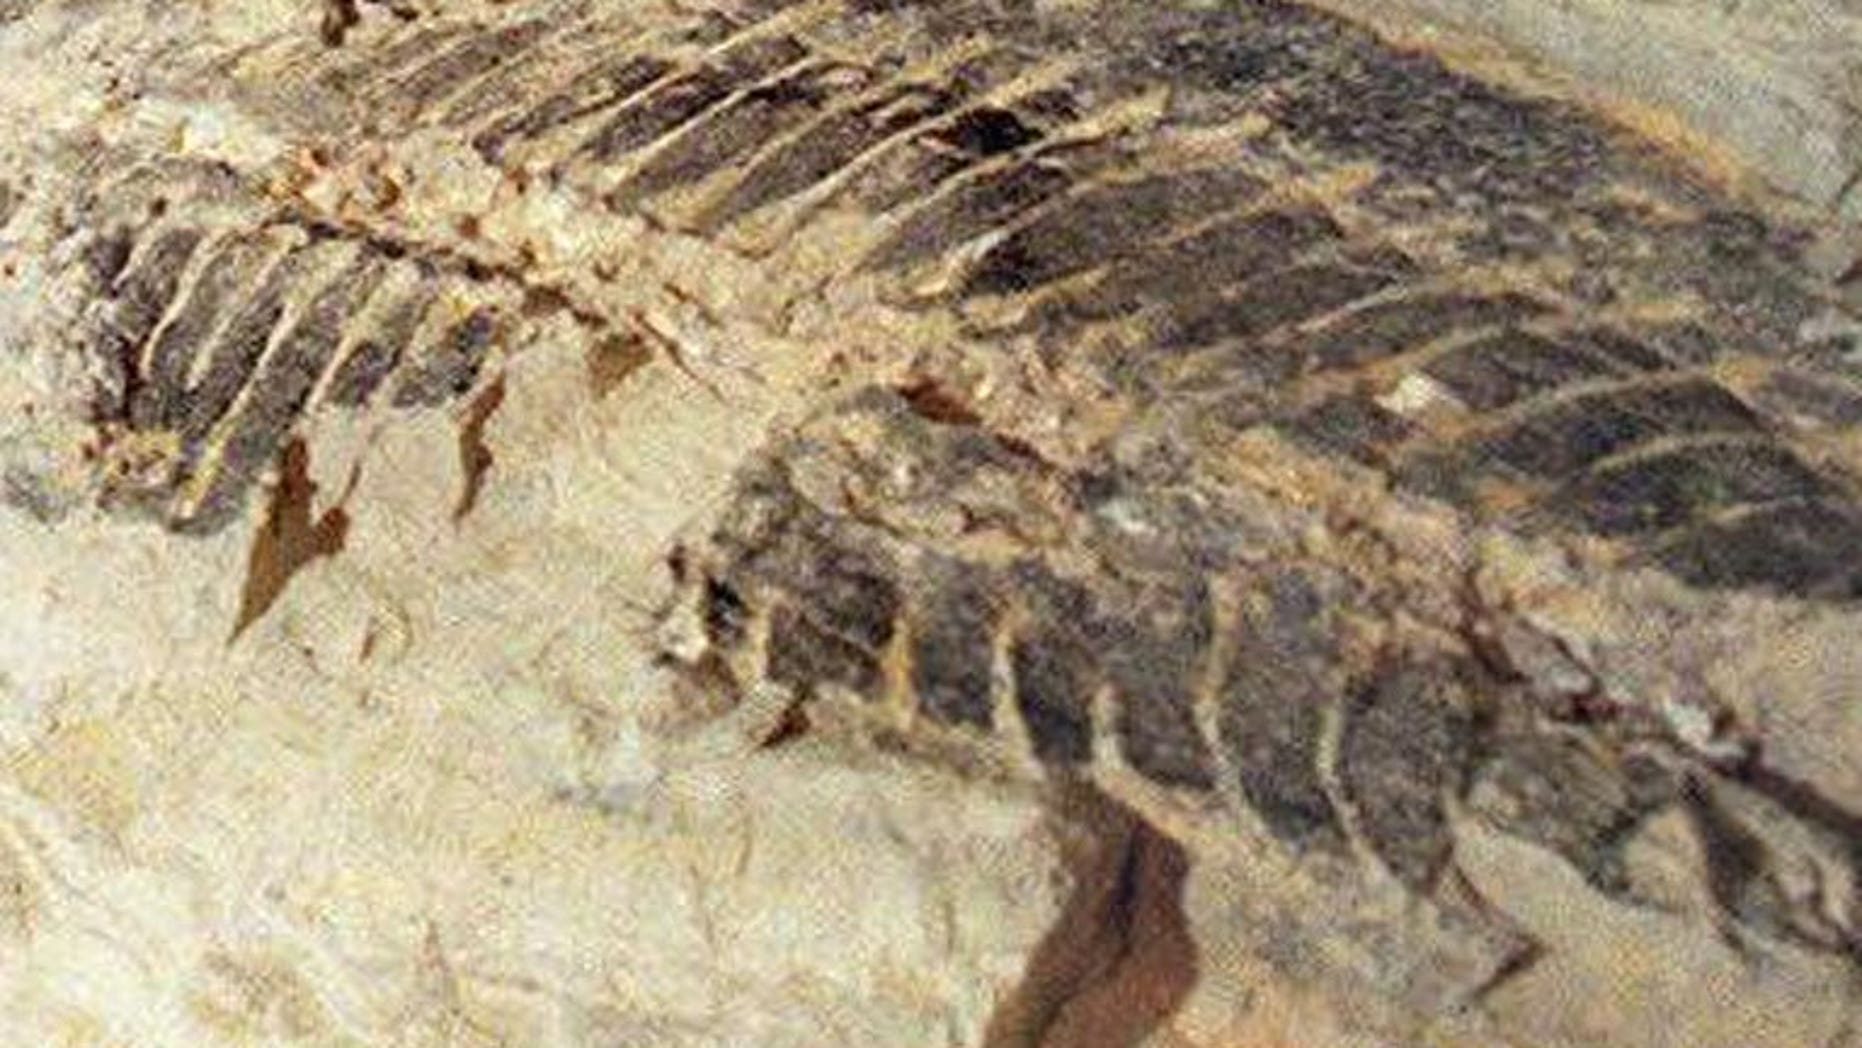 Illustration photo shows a 220-million-year-old amphibian fossil found in a quarry north of Sydney on February 14, 1997. Australian builders doing roadworks have uncovered a rare urban trove of crocodile and other fossils thought to be around 50 million years old, officials said.